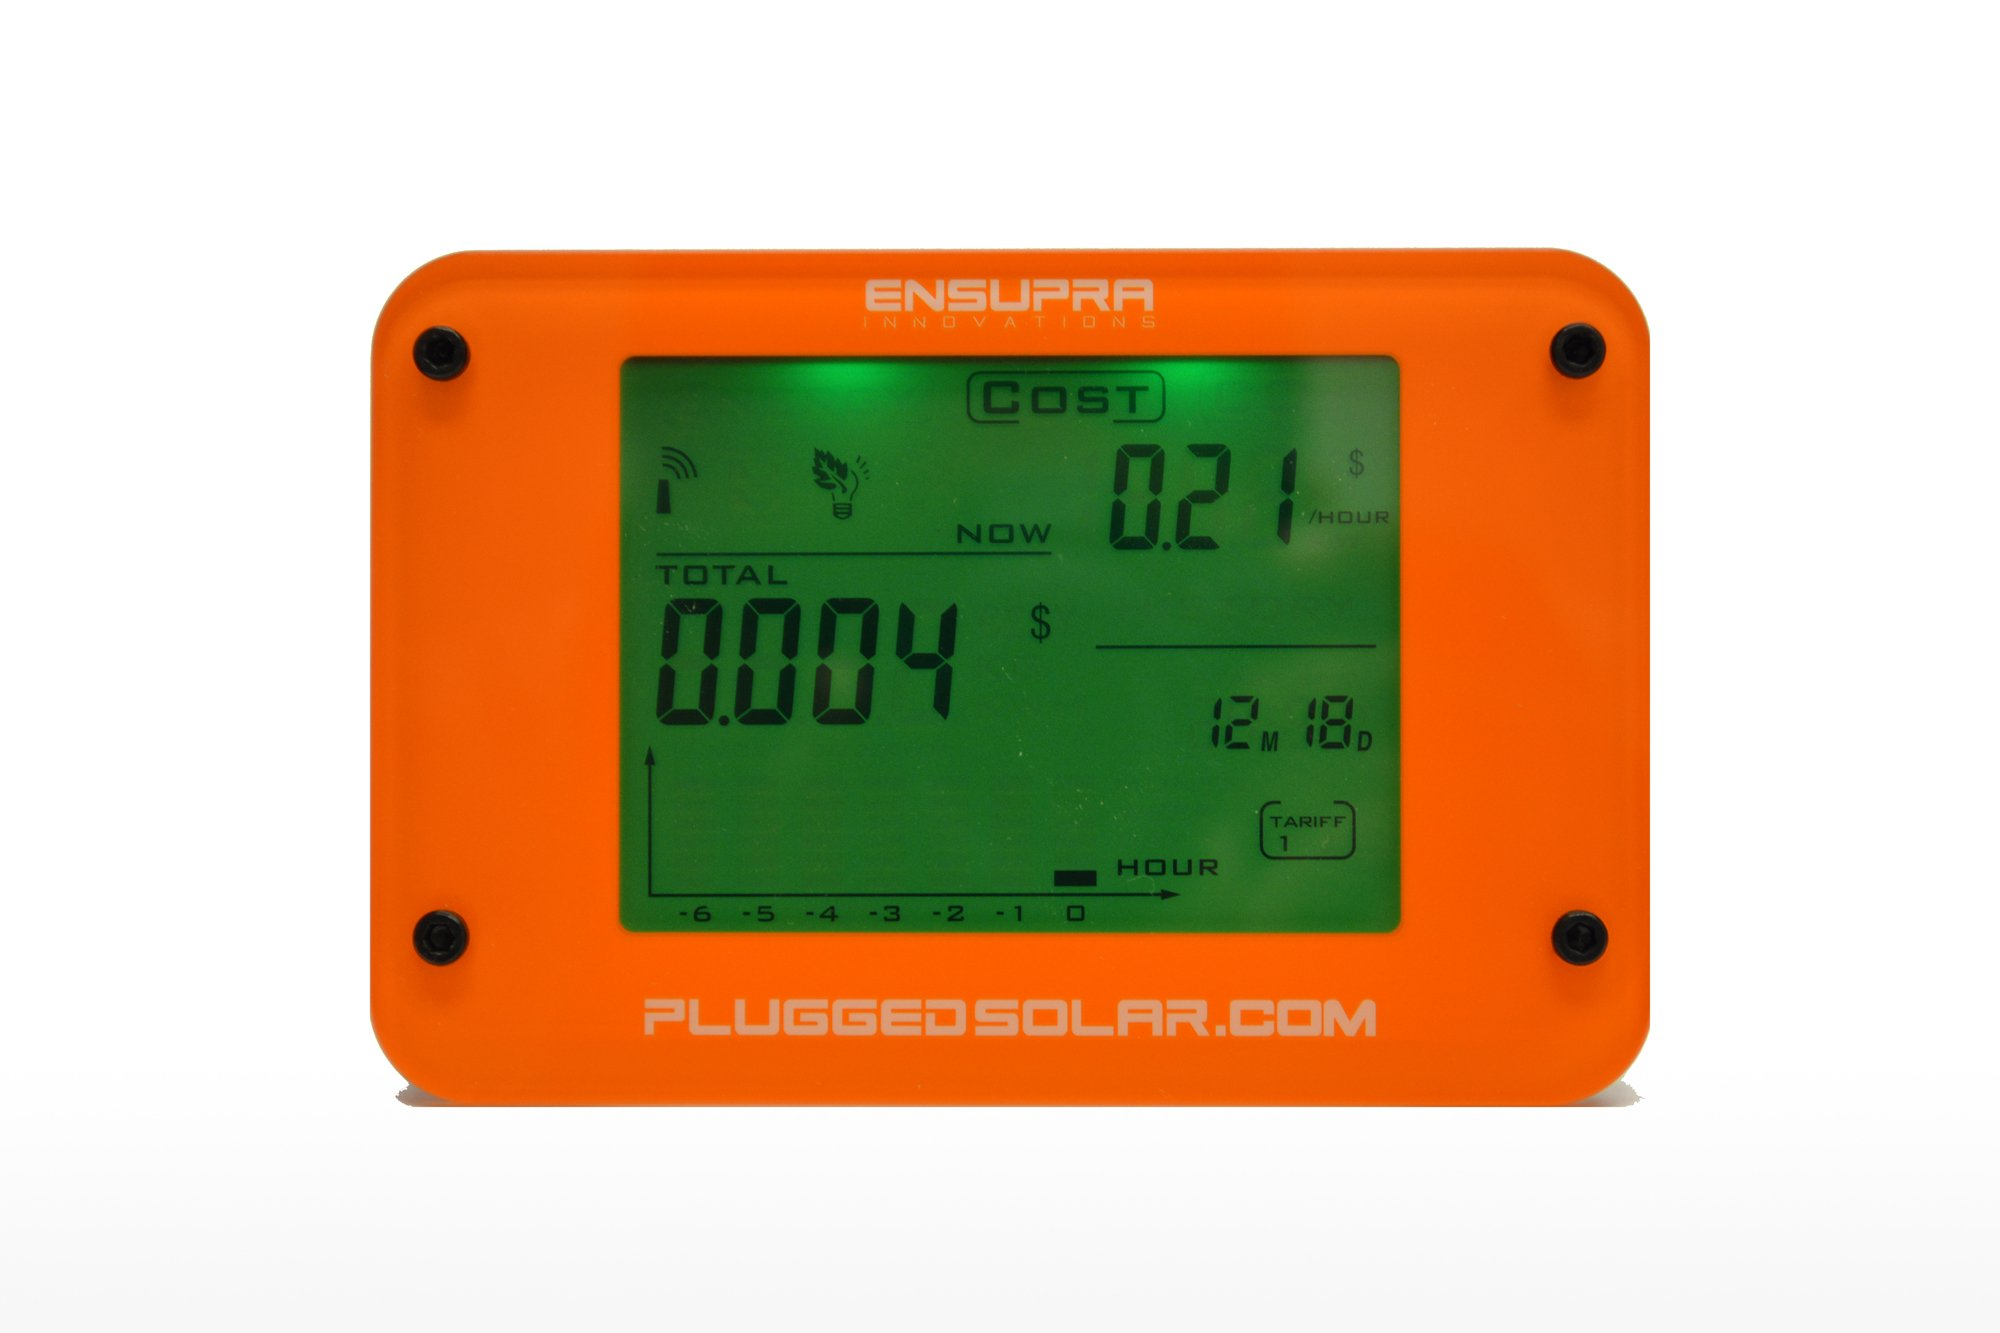 Wireless Solar Power Meter for Solar Power (AC), Monitor Displays Live KW (Kilo-Watts of AC Power Generation), Records the Solar PV Electricity Prodtion in Kwh, Shows Money Savings and Co2 Avoiaded. Used also for Monitoring Electricity Generation from Win